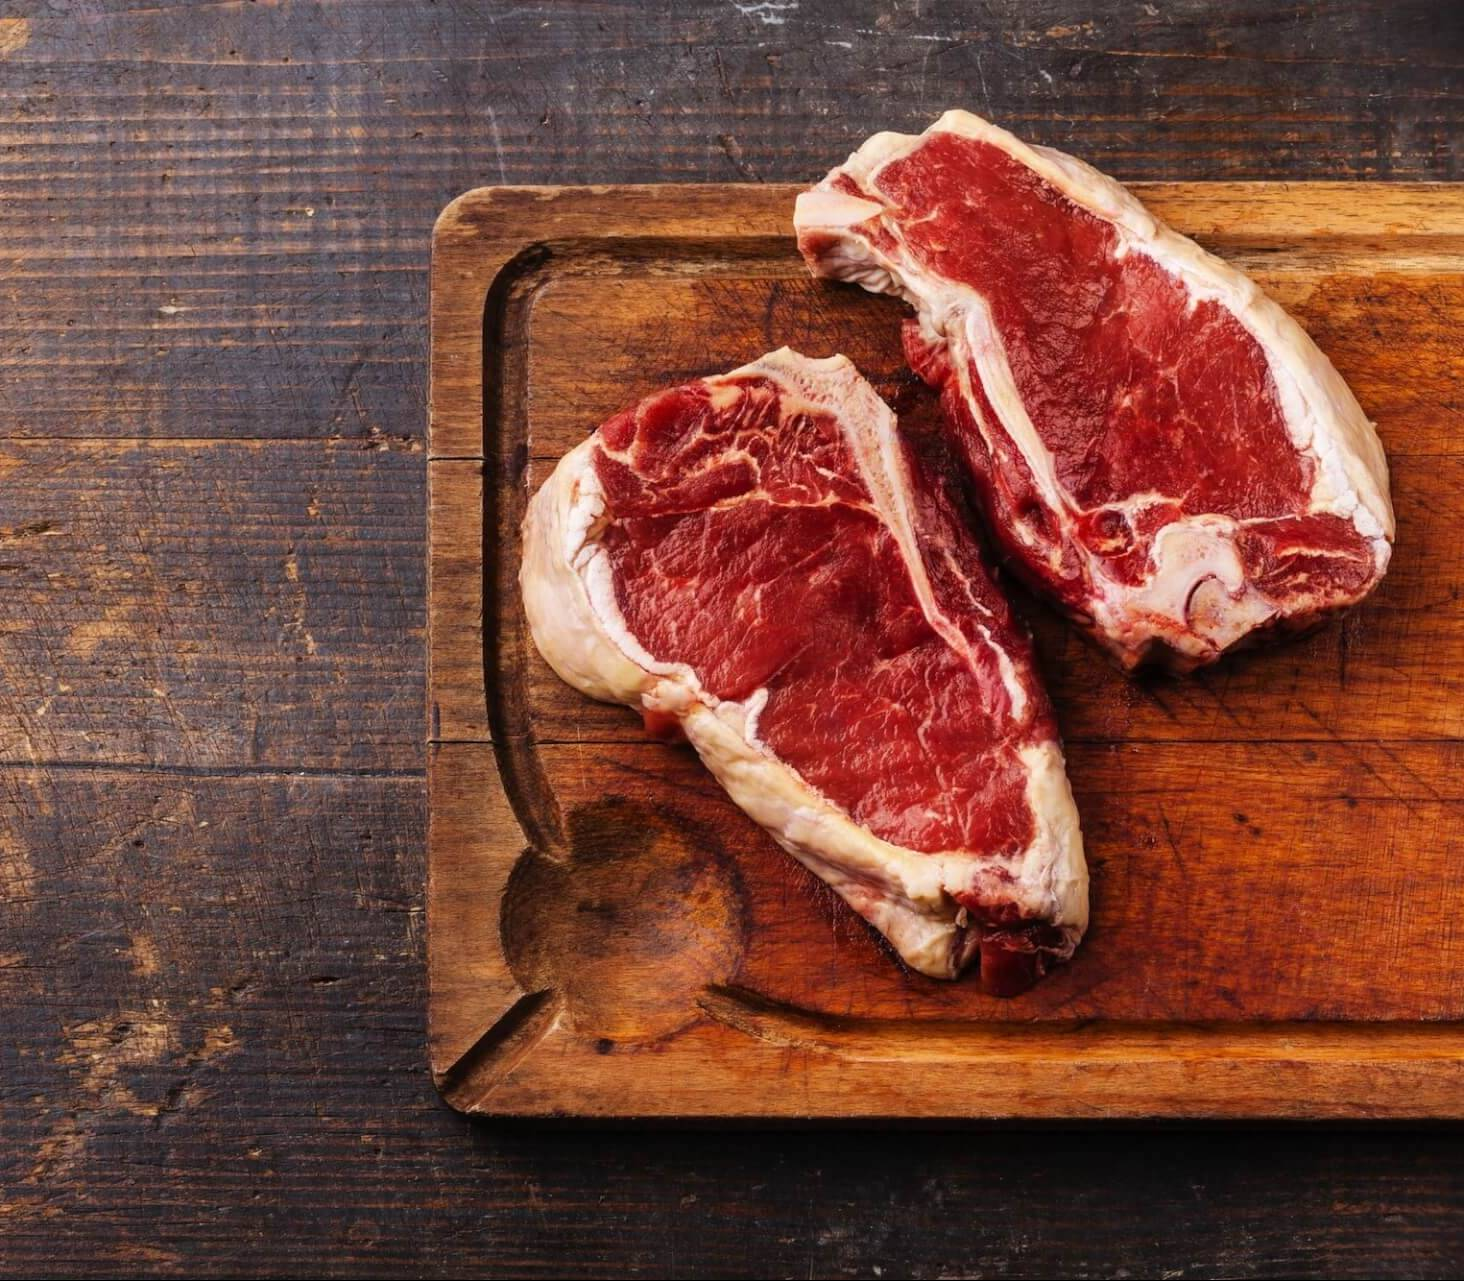 Red Meat - Can It Fit Into A Healthy Diet?